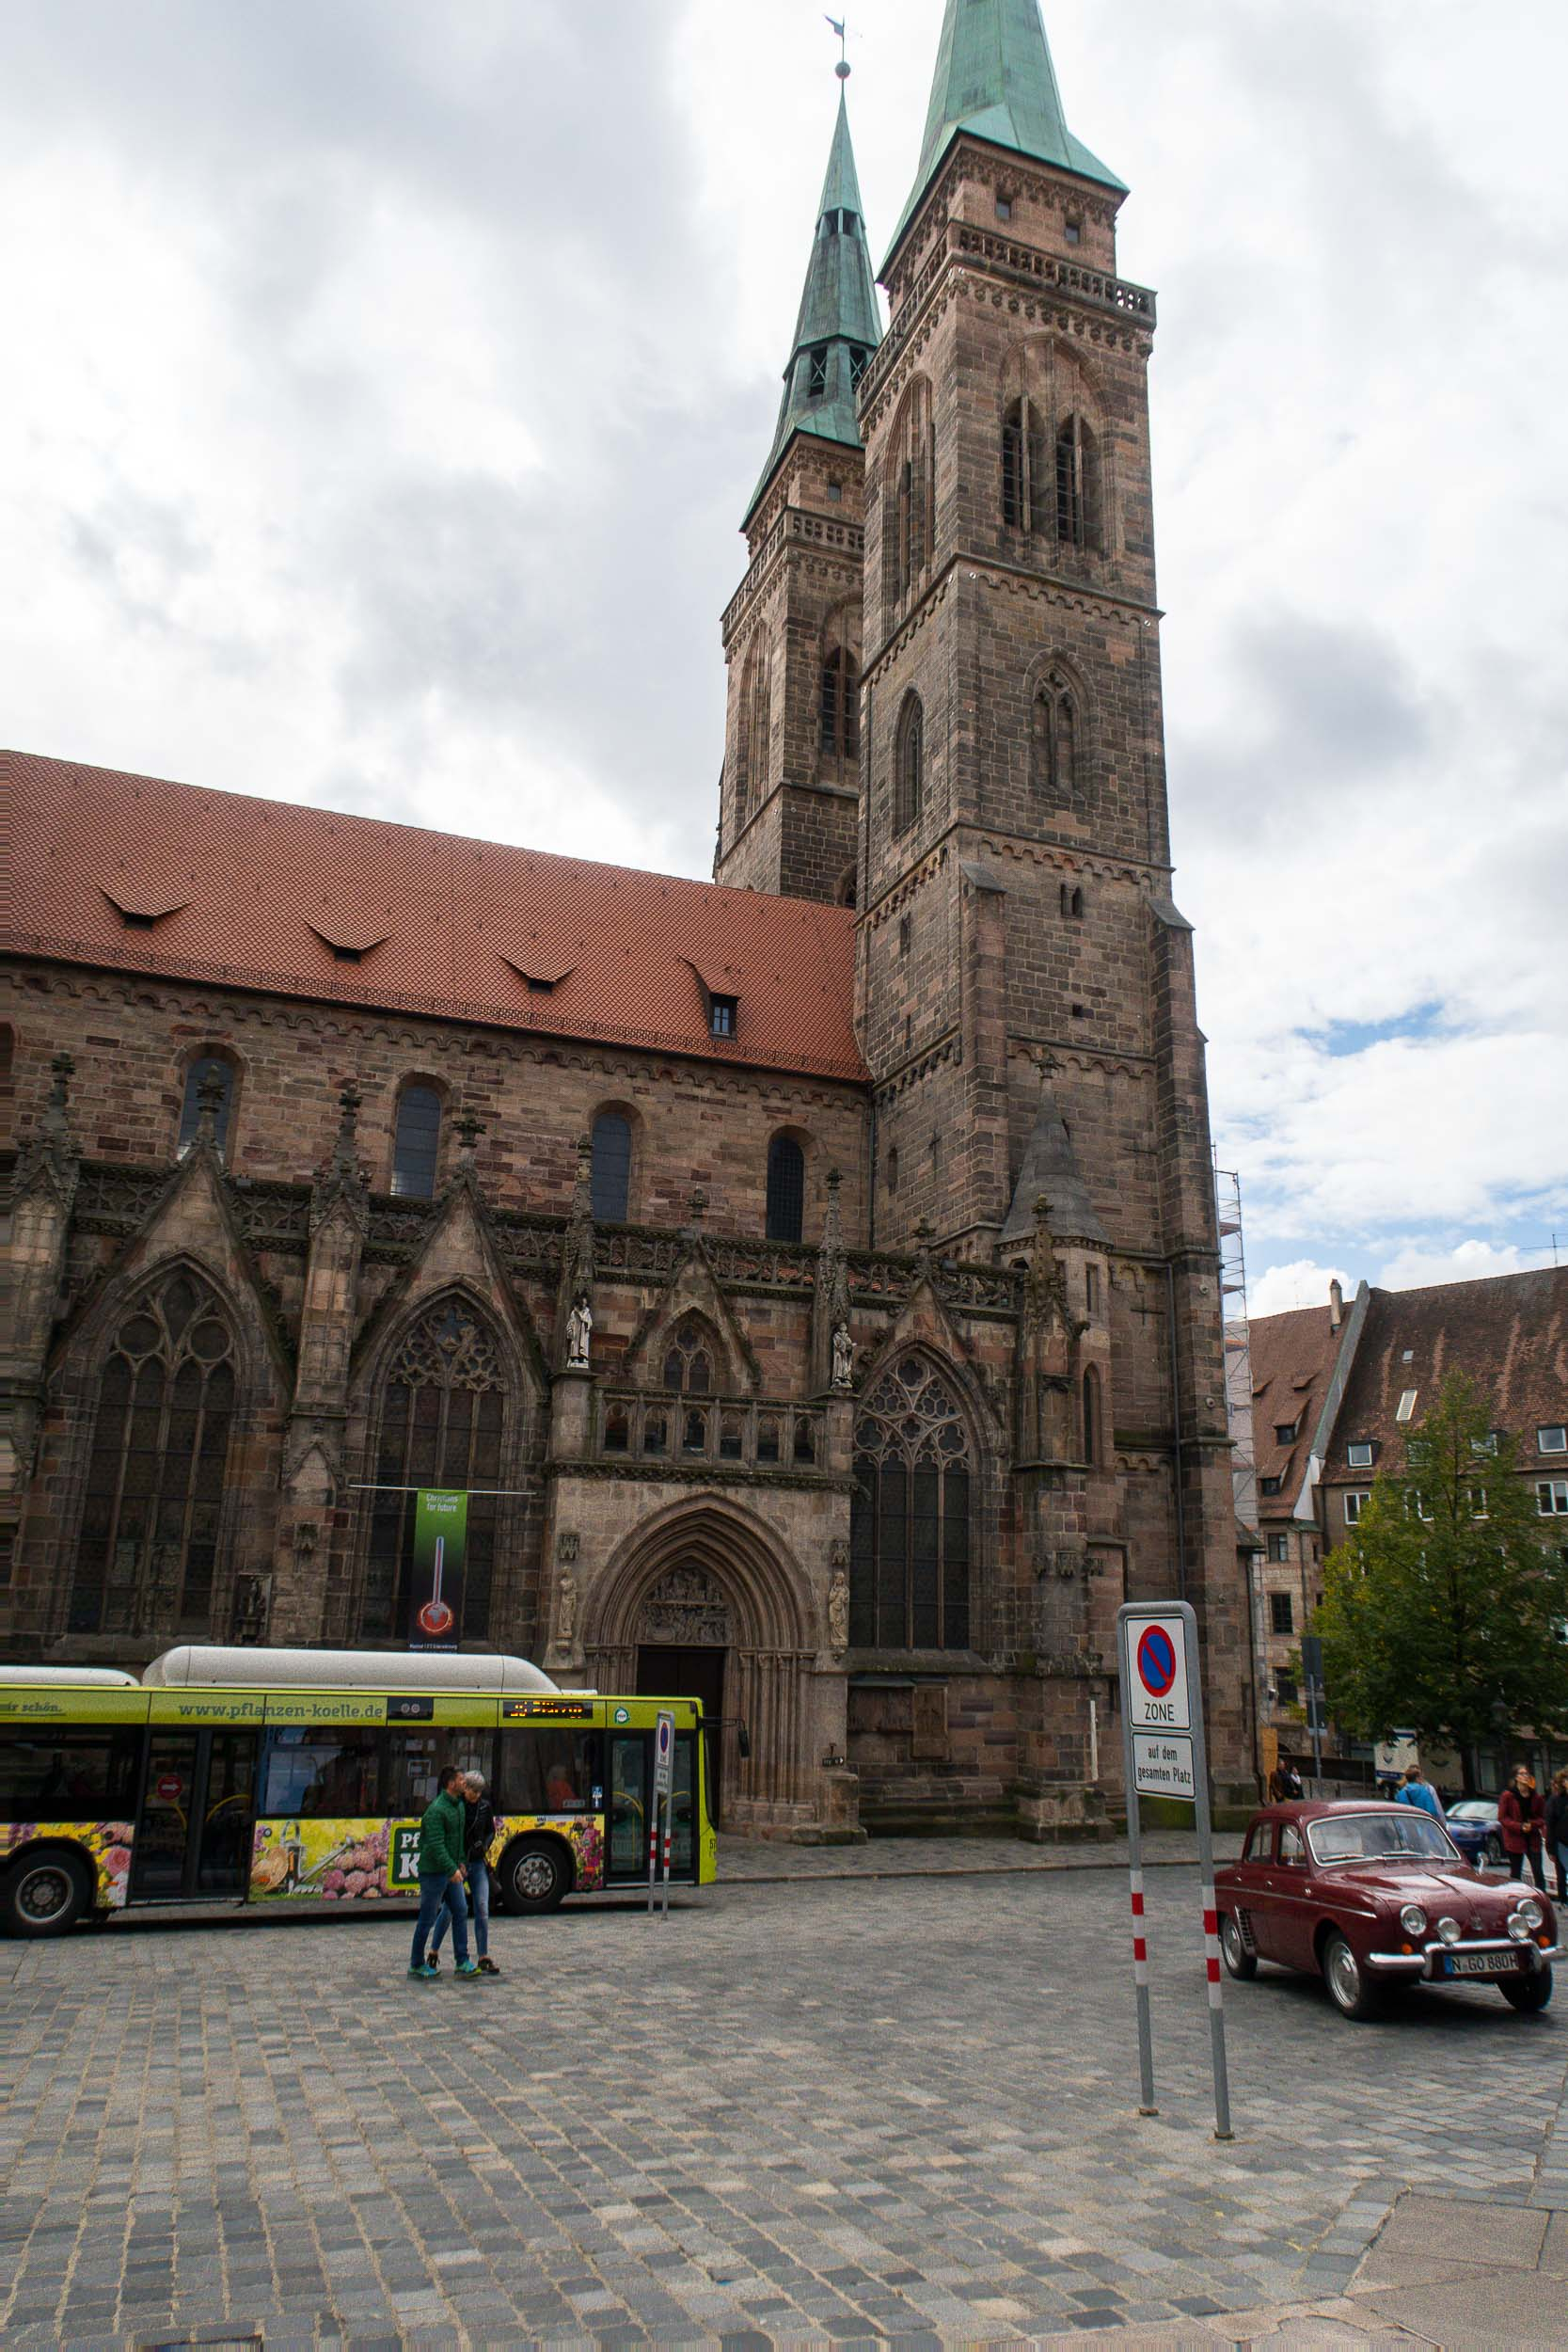 The Ultimate Guide to traveling around Nuremberg, Germany